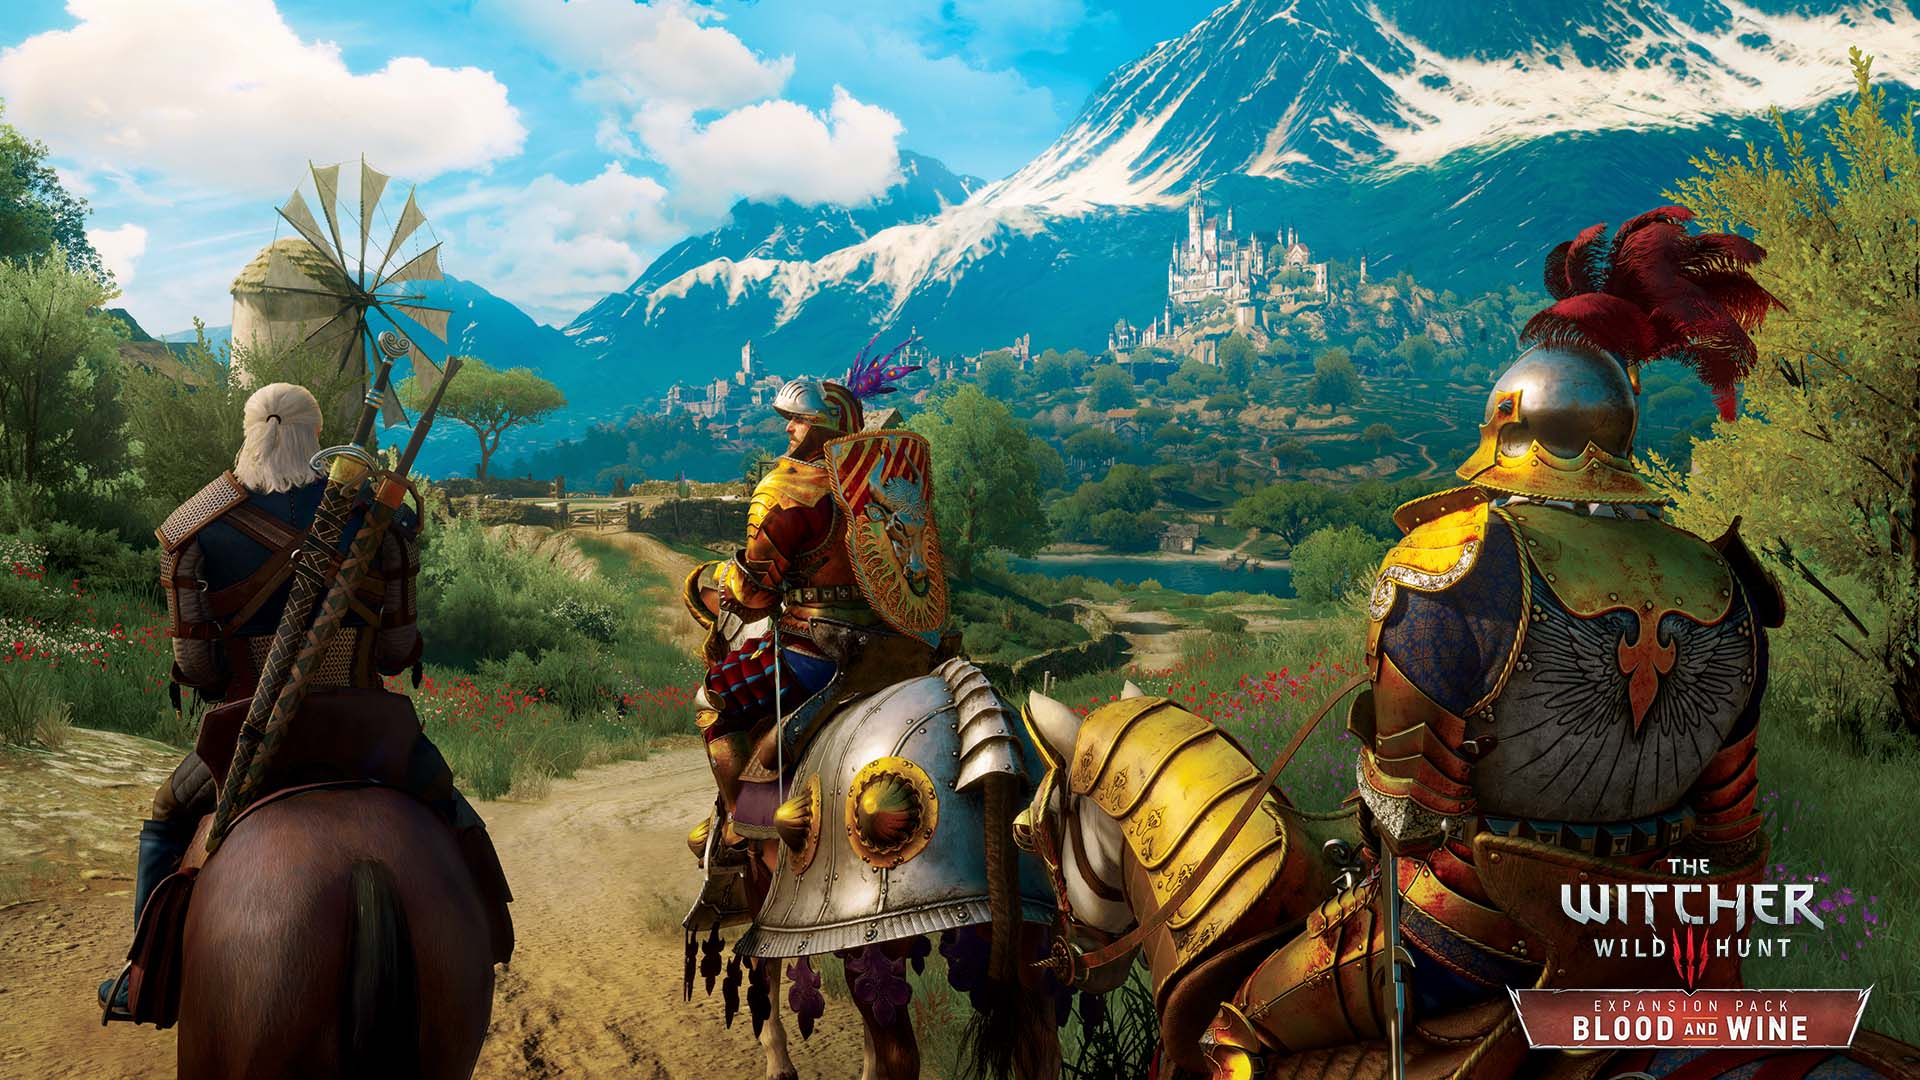 The_Witcher_3_Wild_Hunt_Blood_and_Wine_Toussaint_is_a_beautiful_place_RGB_EN